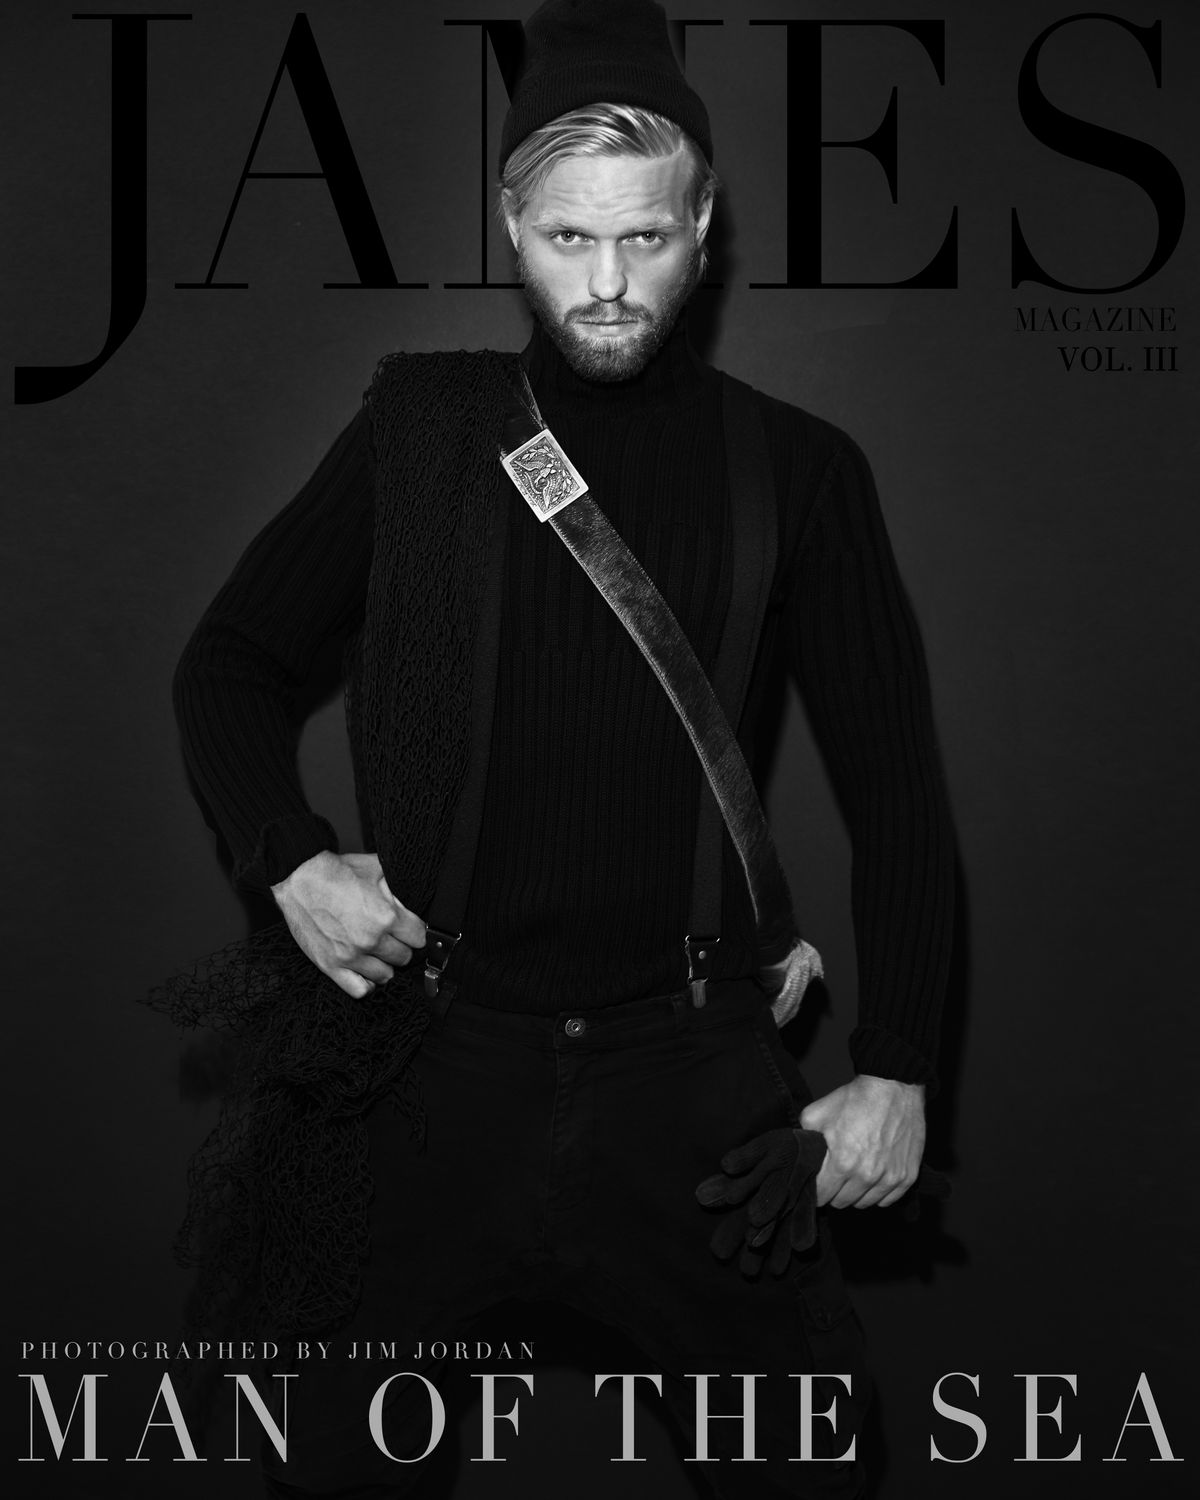 DAX BLINN - JAMES MAGAZINE COVER -MAN OF THE SEA.jpg